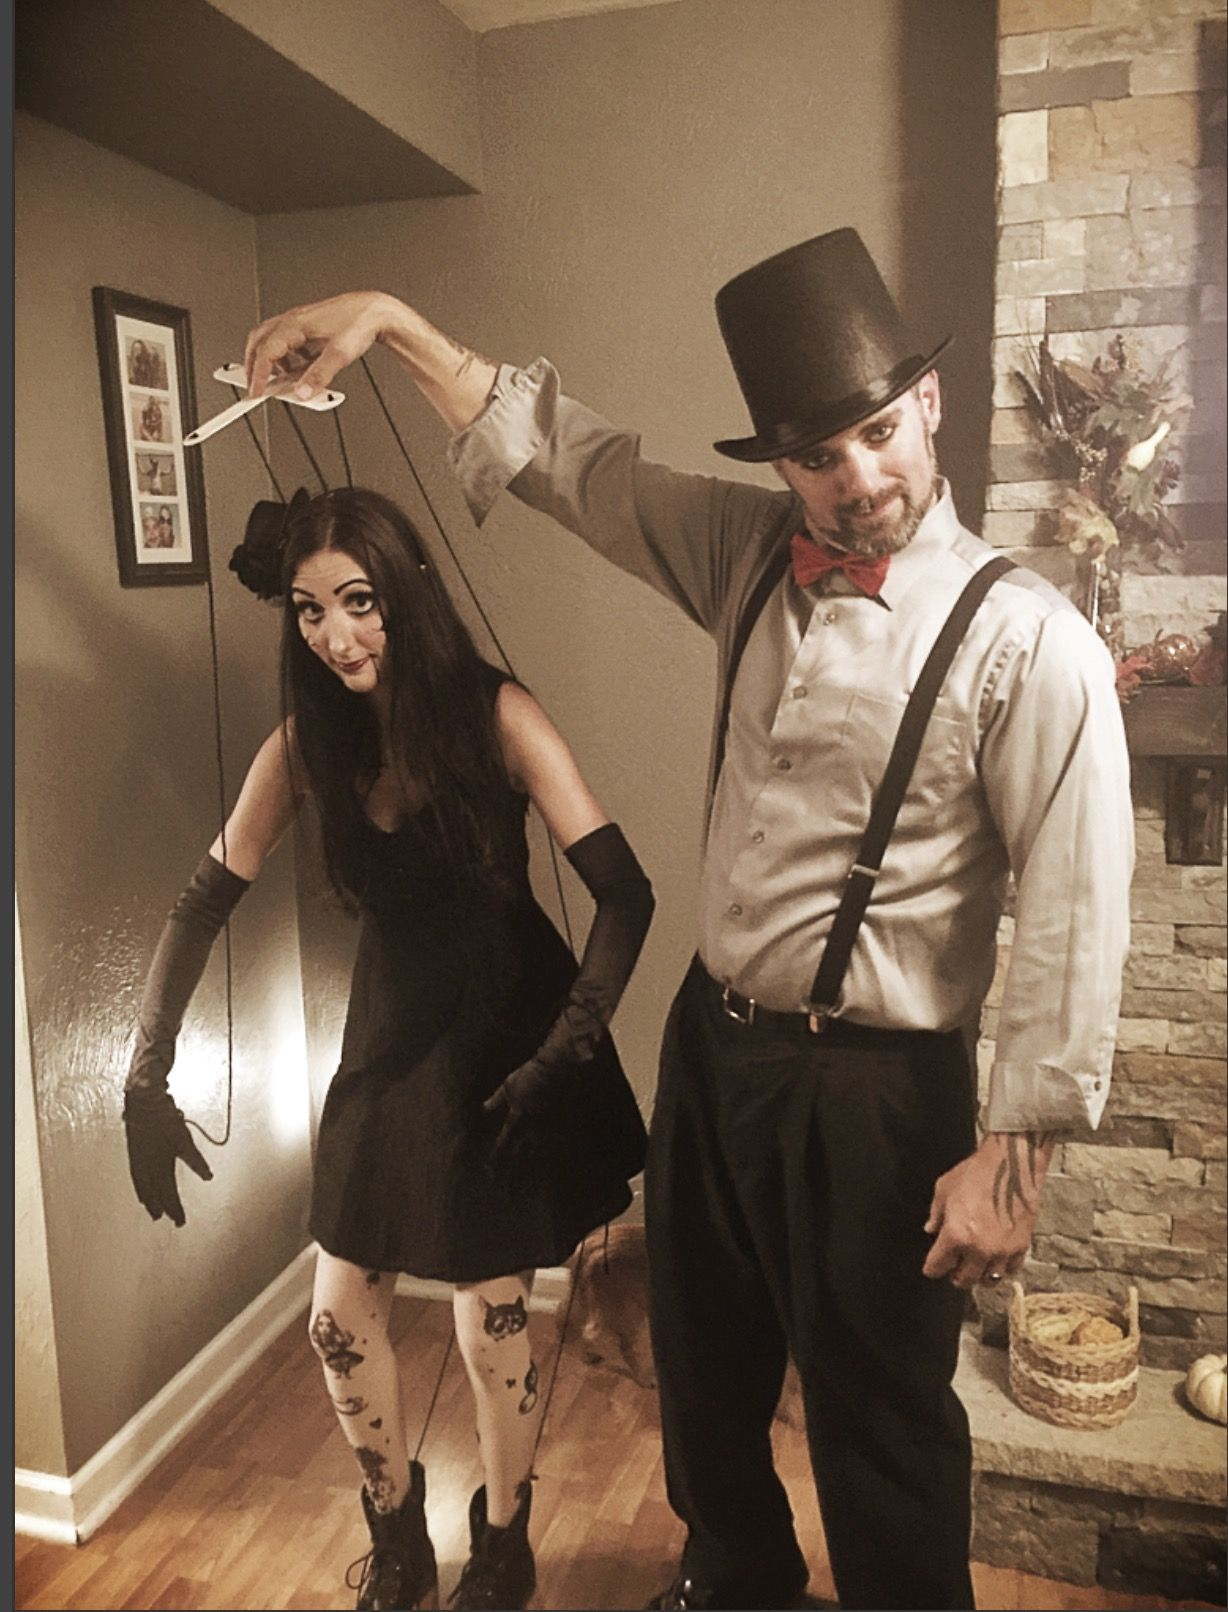 Halloween 2020 Is Laurie Puppetmaster Marionette and her puppet master!! | Diy couples costumes, Couples